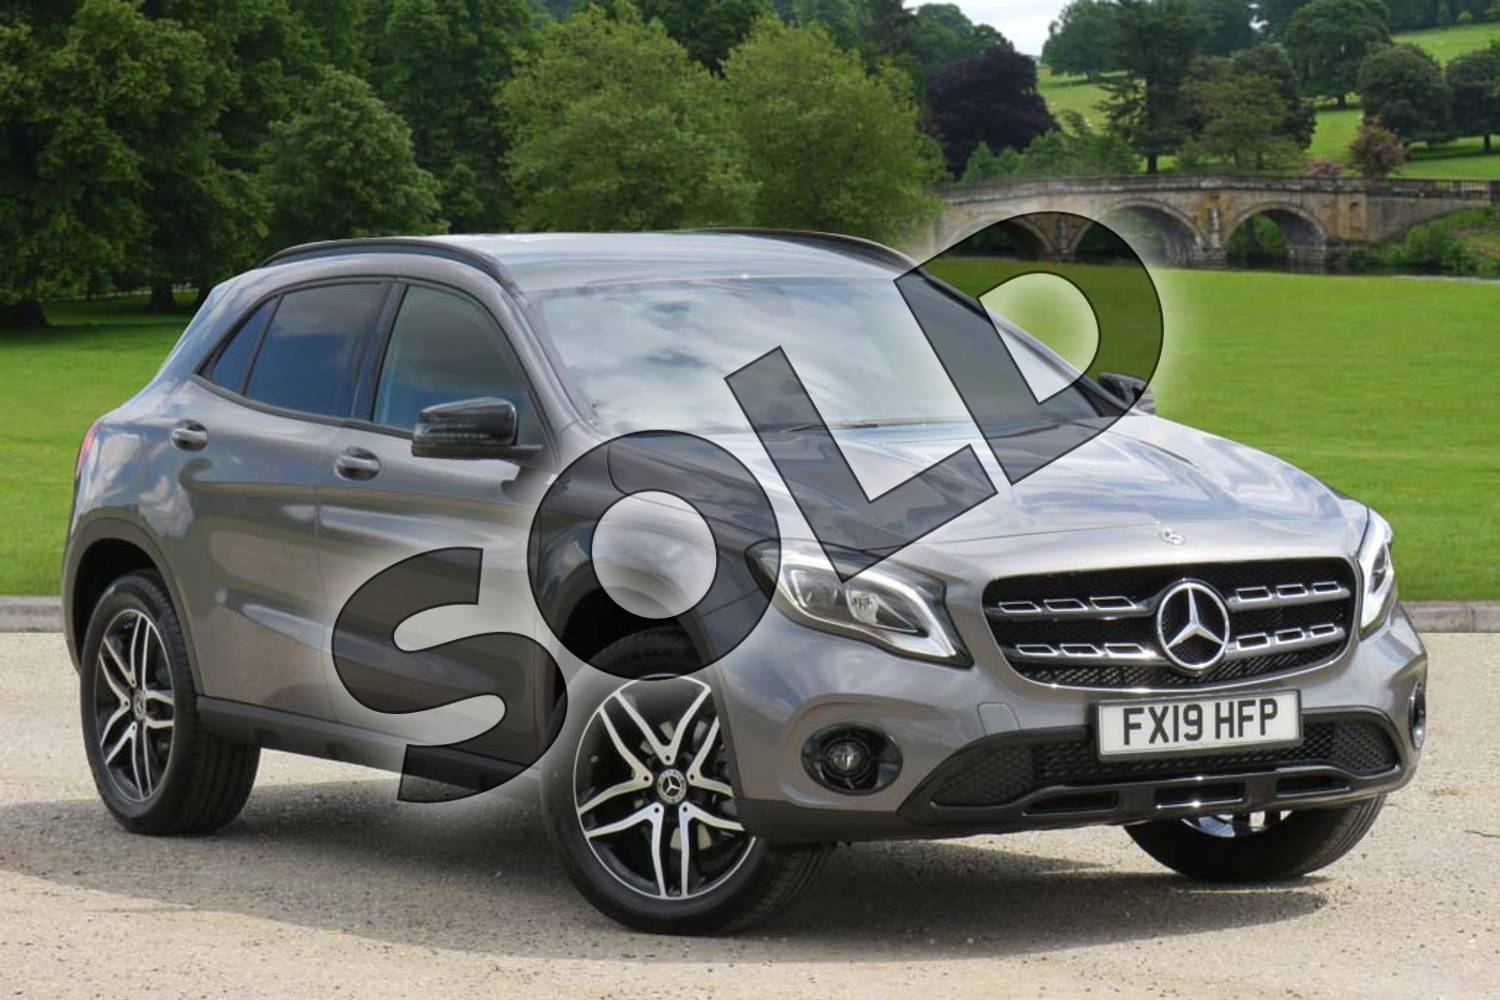 2019 Mercedes-Benz GLA Class Hatchback GLA 180 Urban Edition 5dr Auto in Mountain Grey Metallic at Mercedes-Benz of Boston